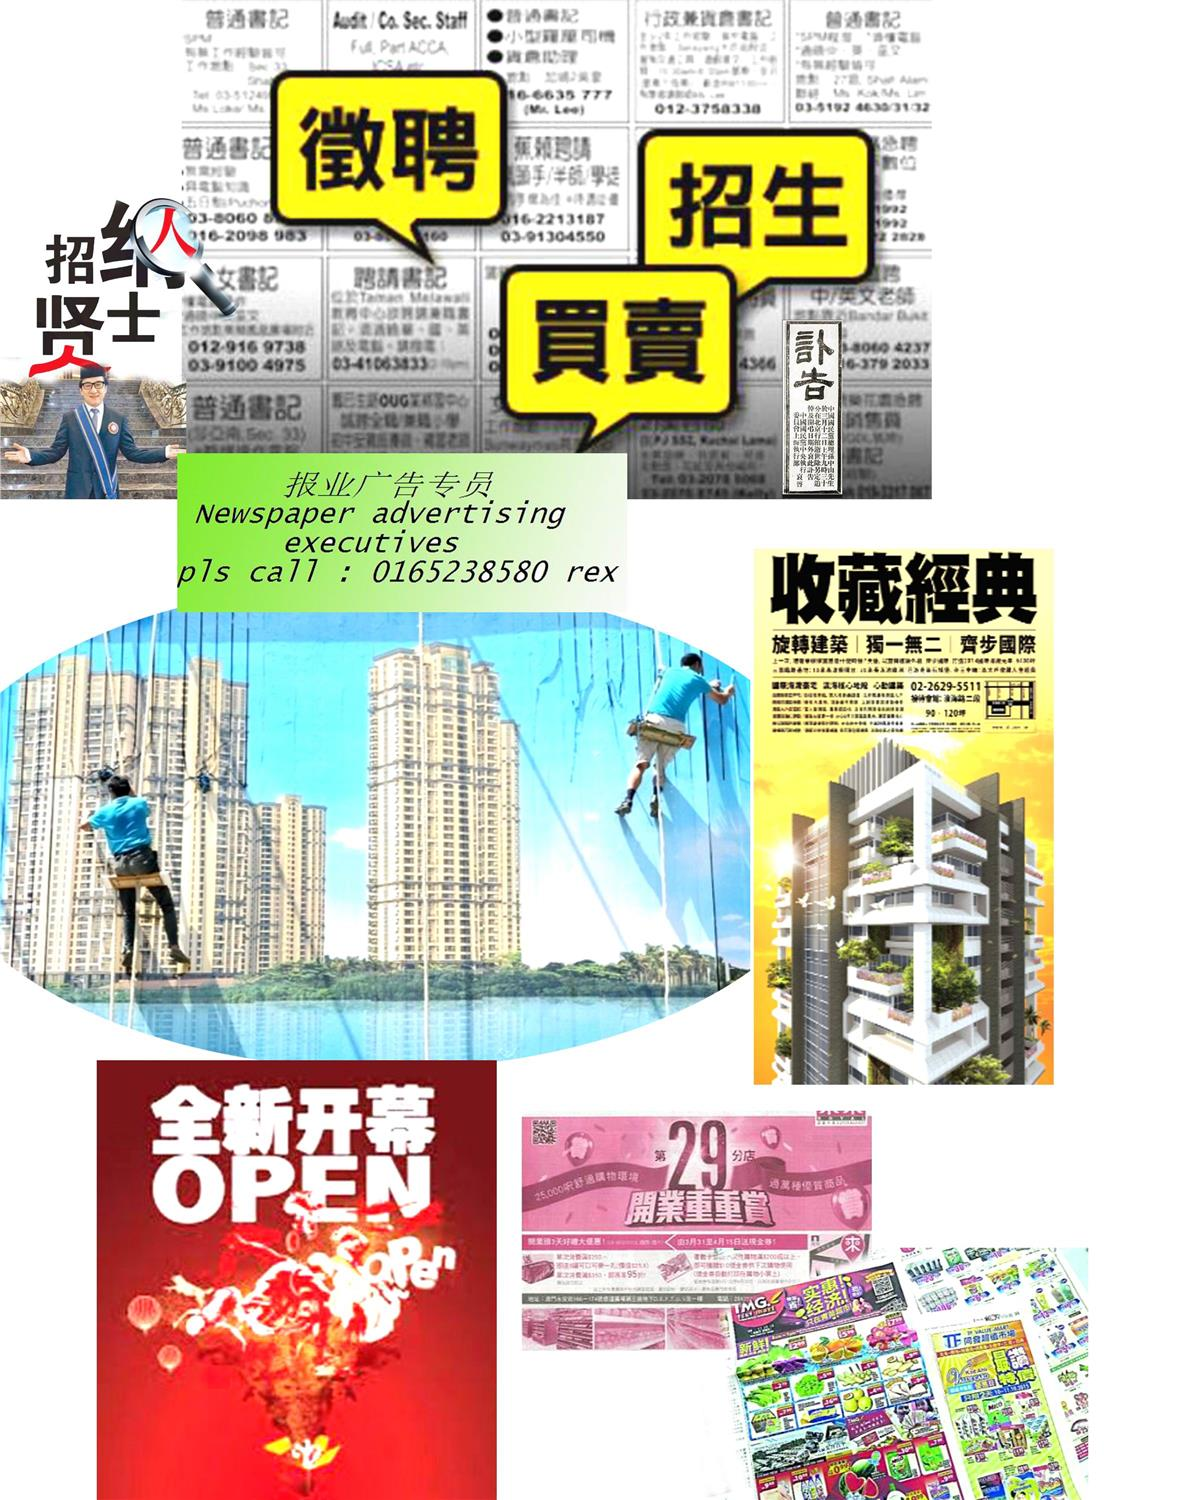 sinchew nanyang newspaper advertising open ceremony Recruitment